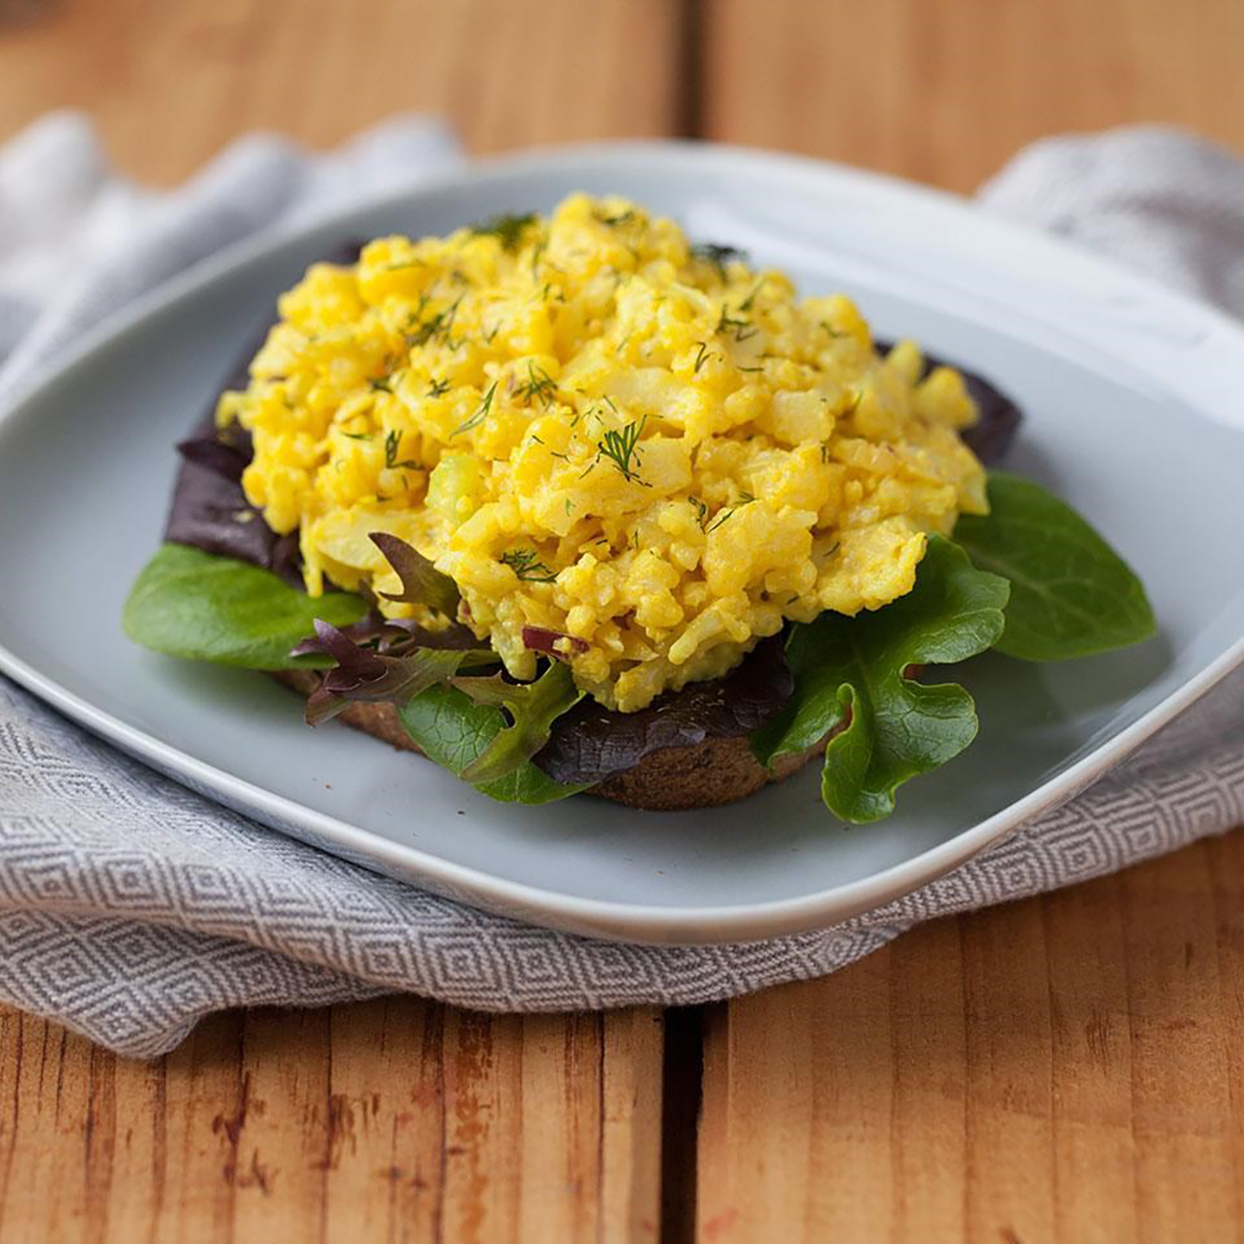 Cauliflower stands in for hard-boiled eggs in this healthy vegan recipe. Serve over a bed of greens or on whole-wheat toast for an easy open-face sandwich.